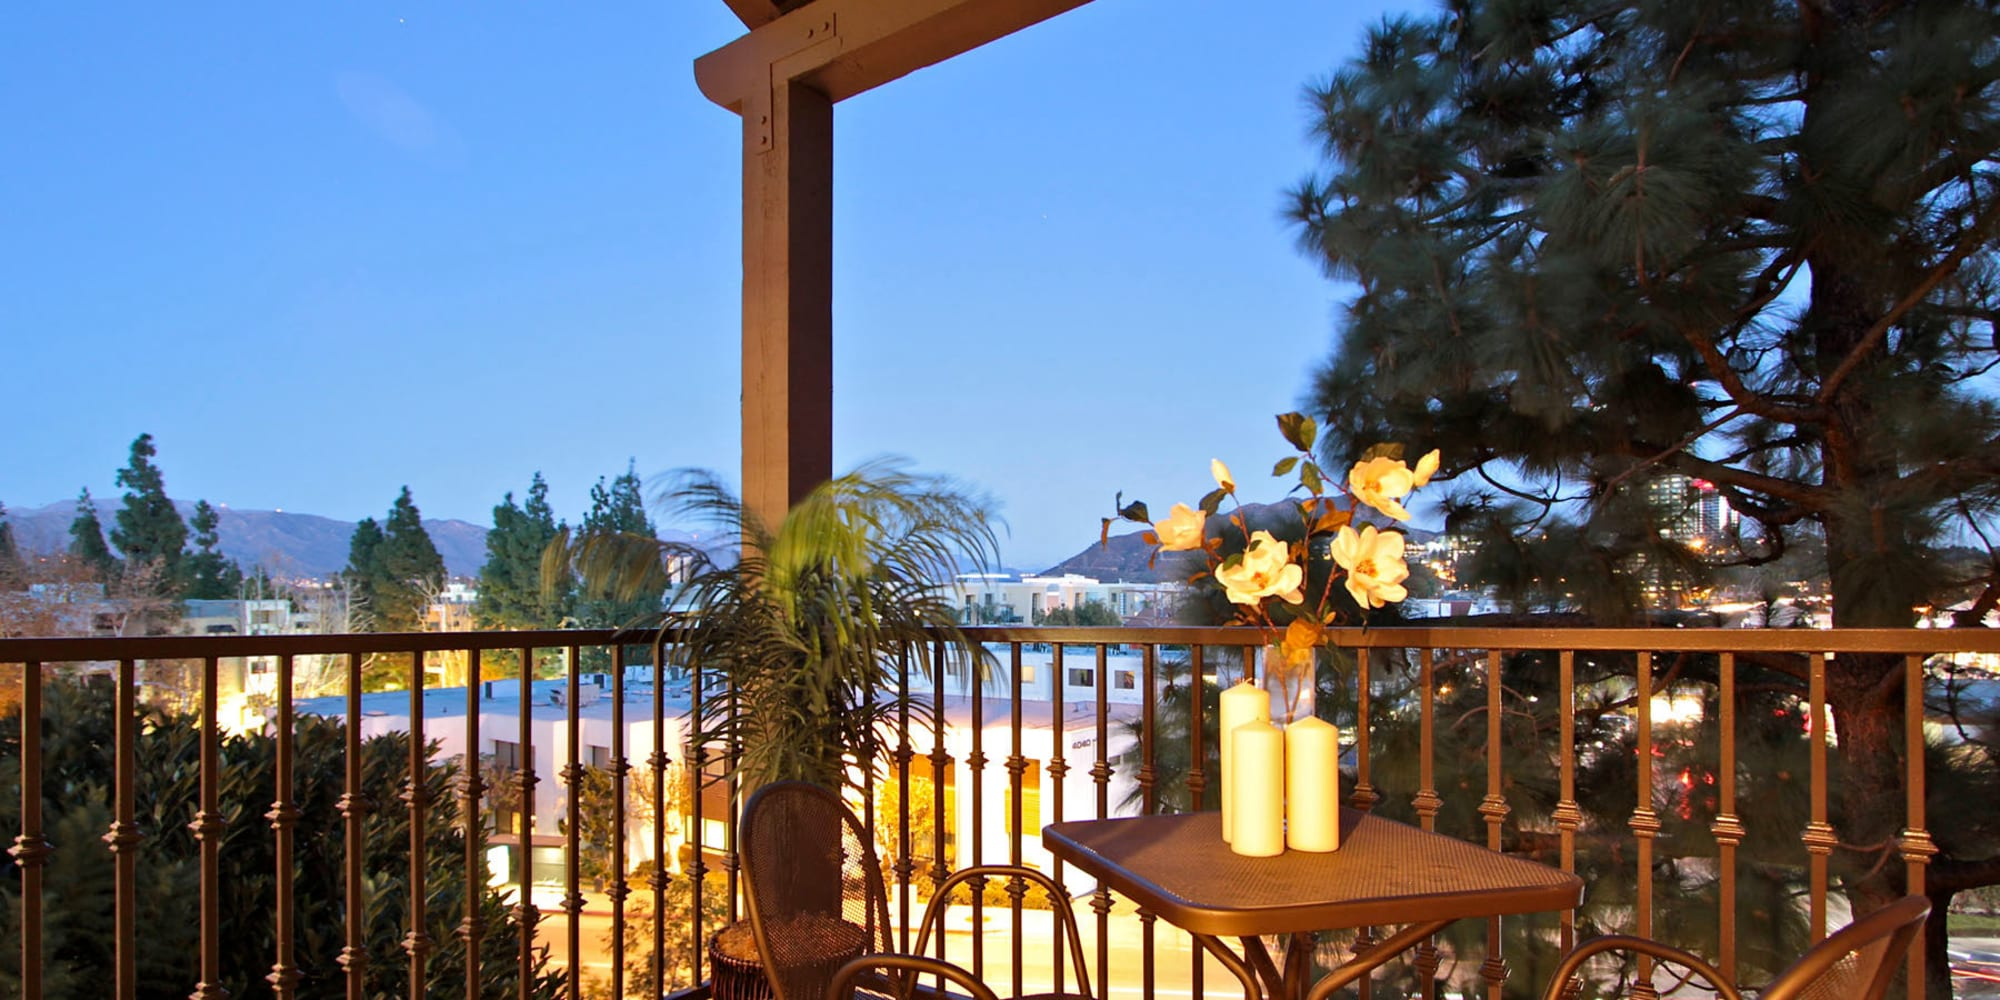 Twilight view of the tranquil community from an apartment home's balcony at L'Estancia in Studio City, California